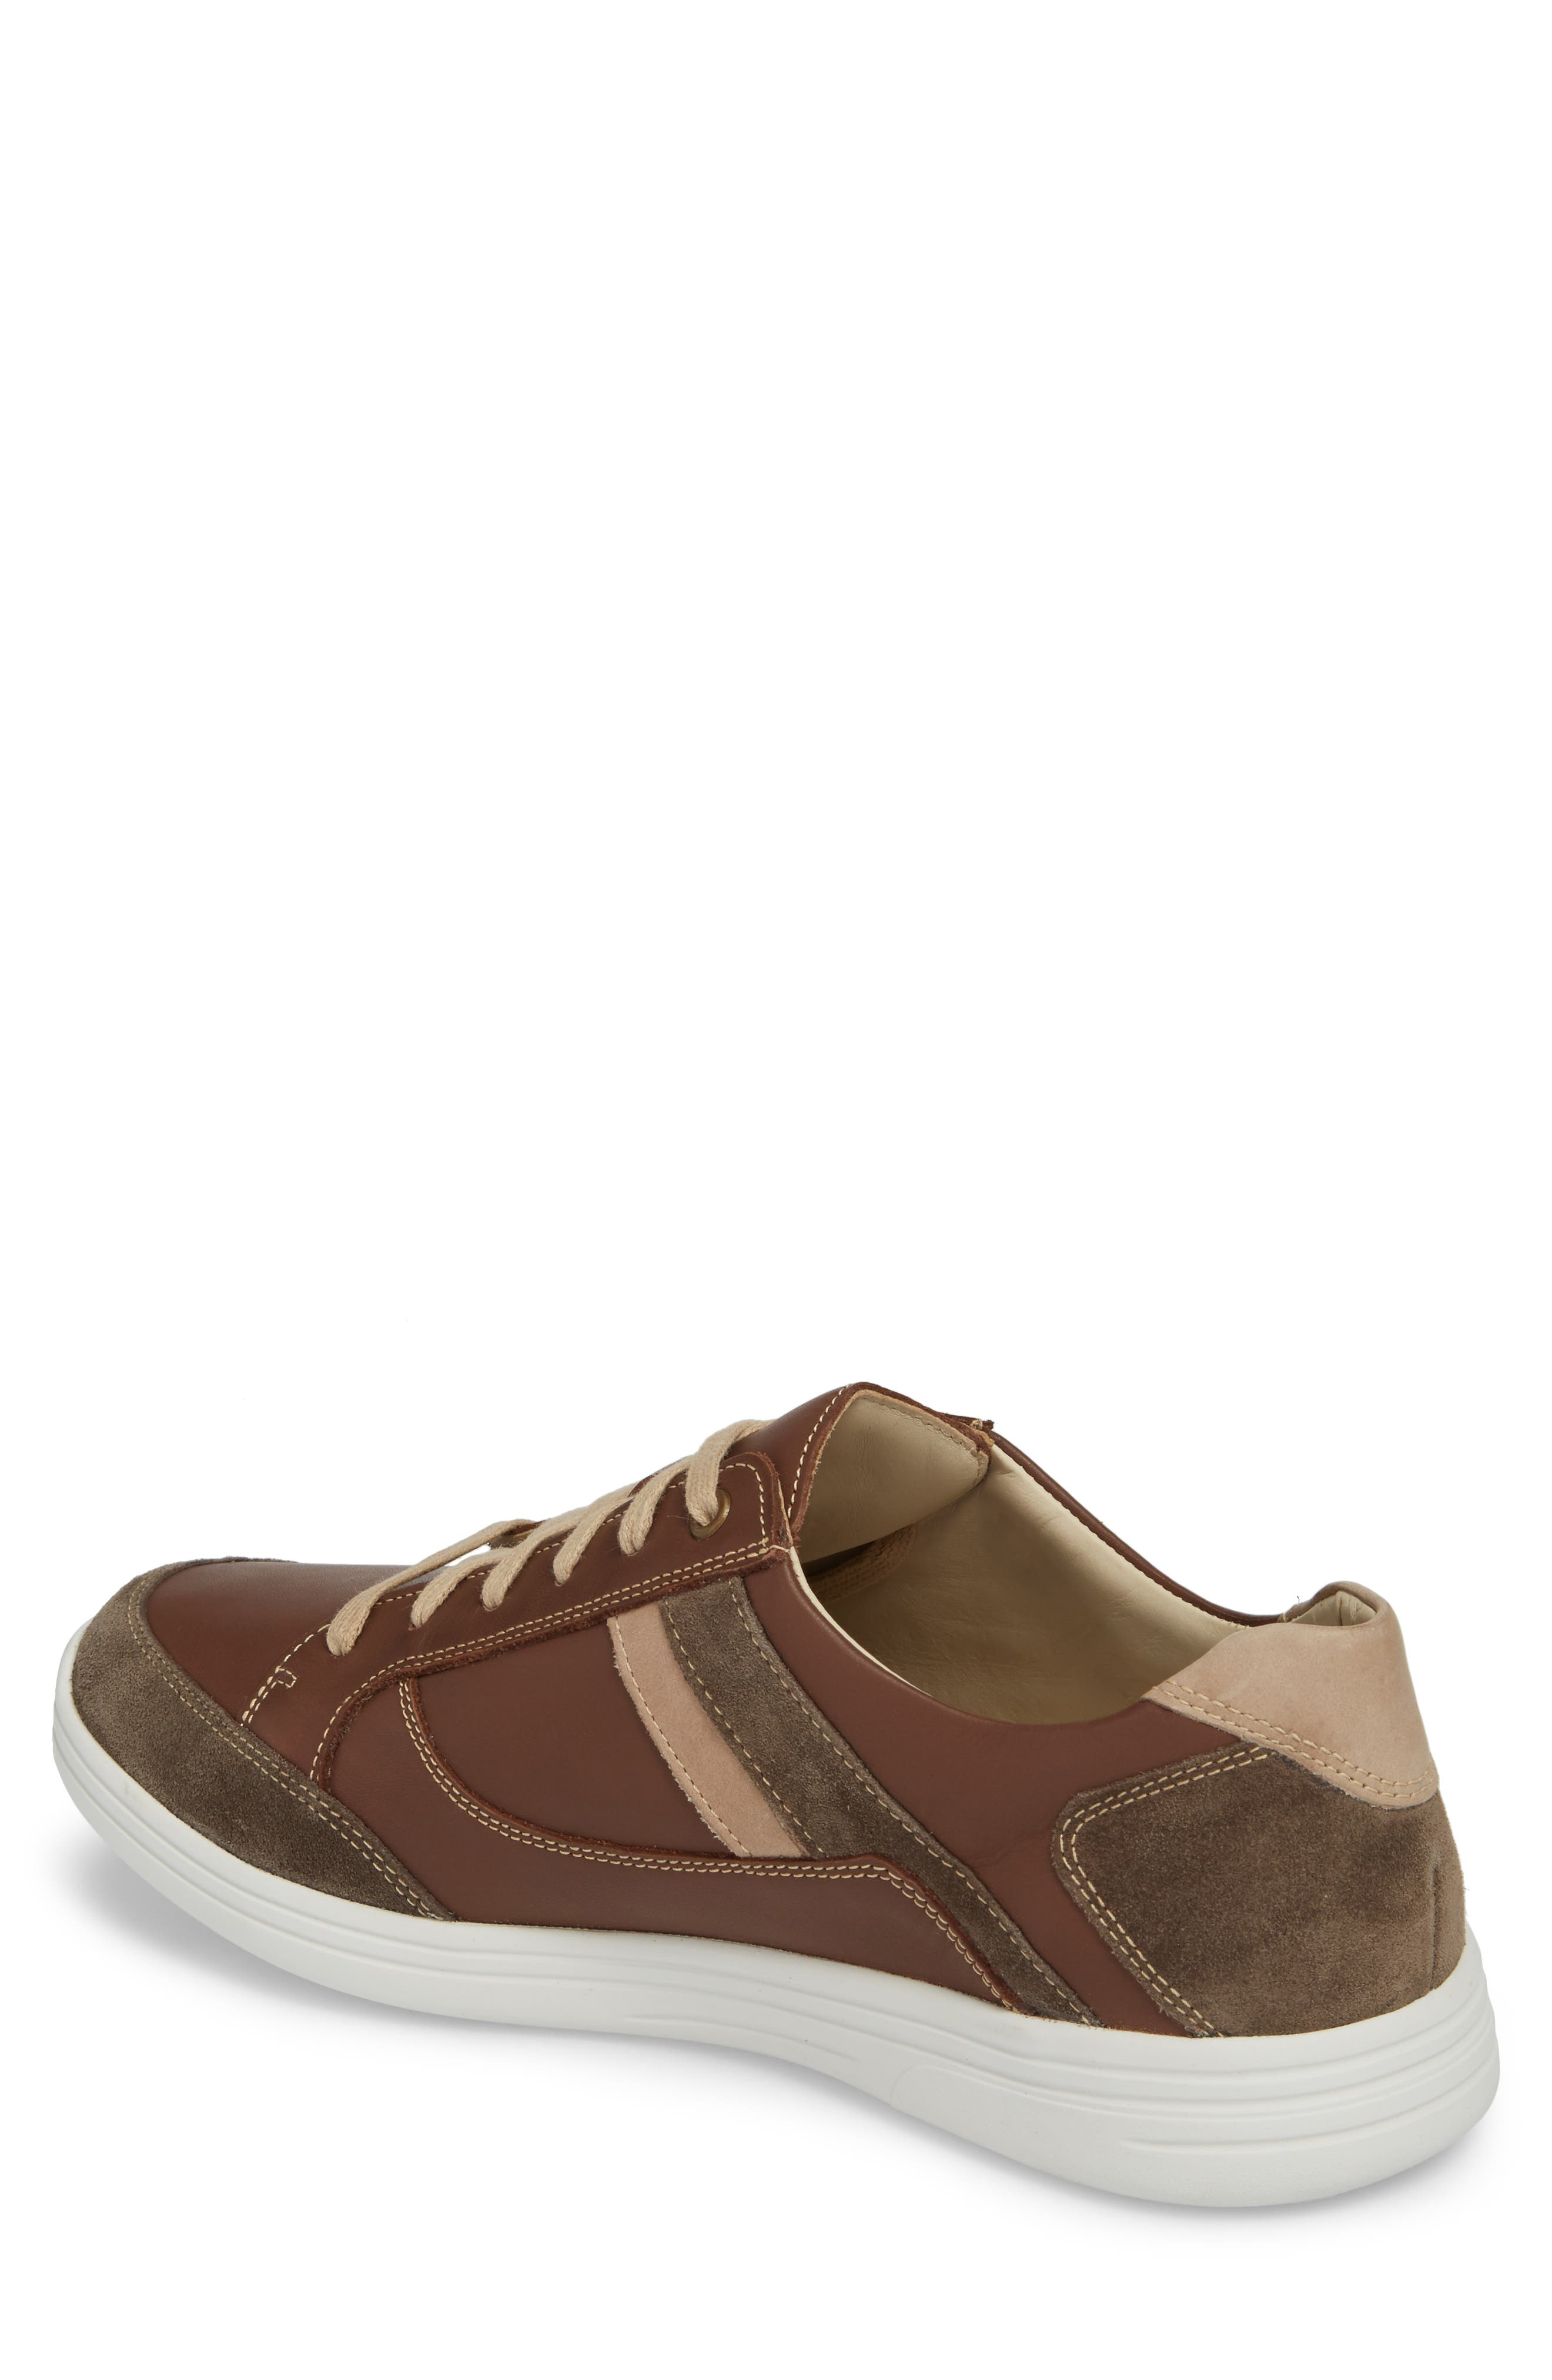 'Frank GoWing' Sneaker,                             Alternate thumbnail 2, color,                             Dark Taupe